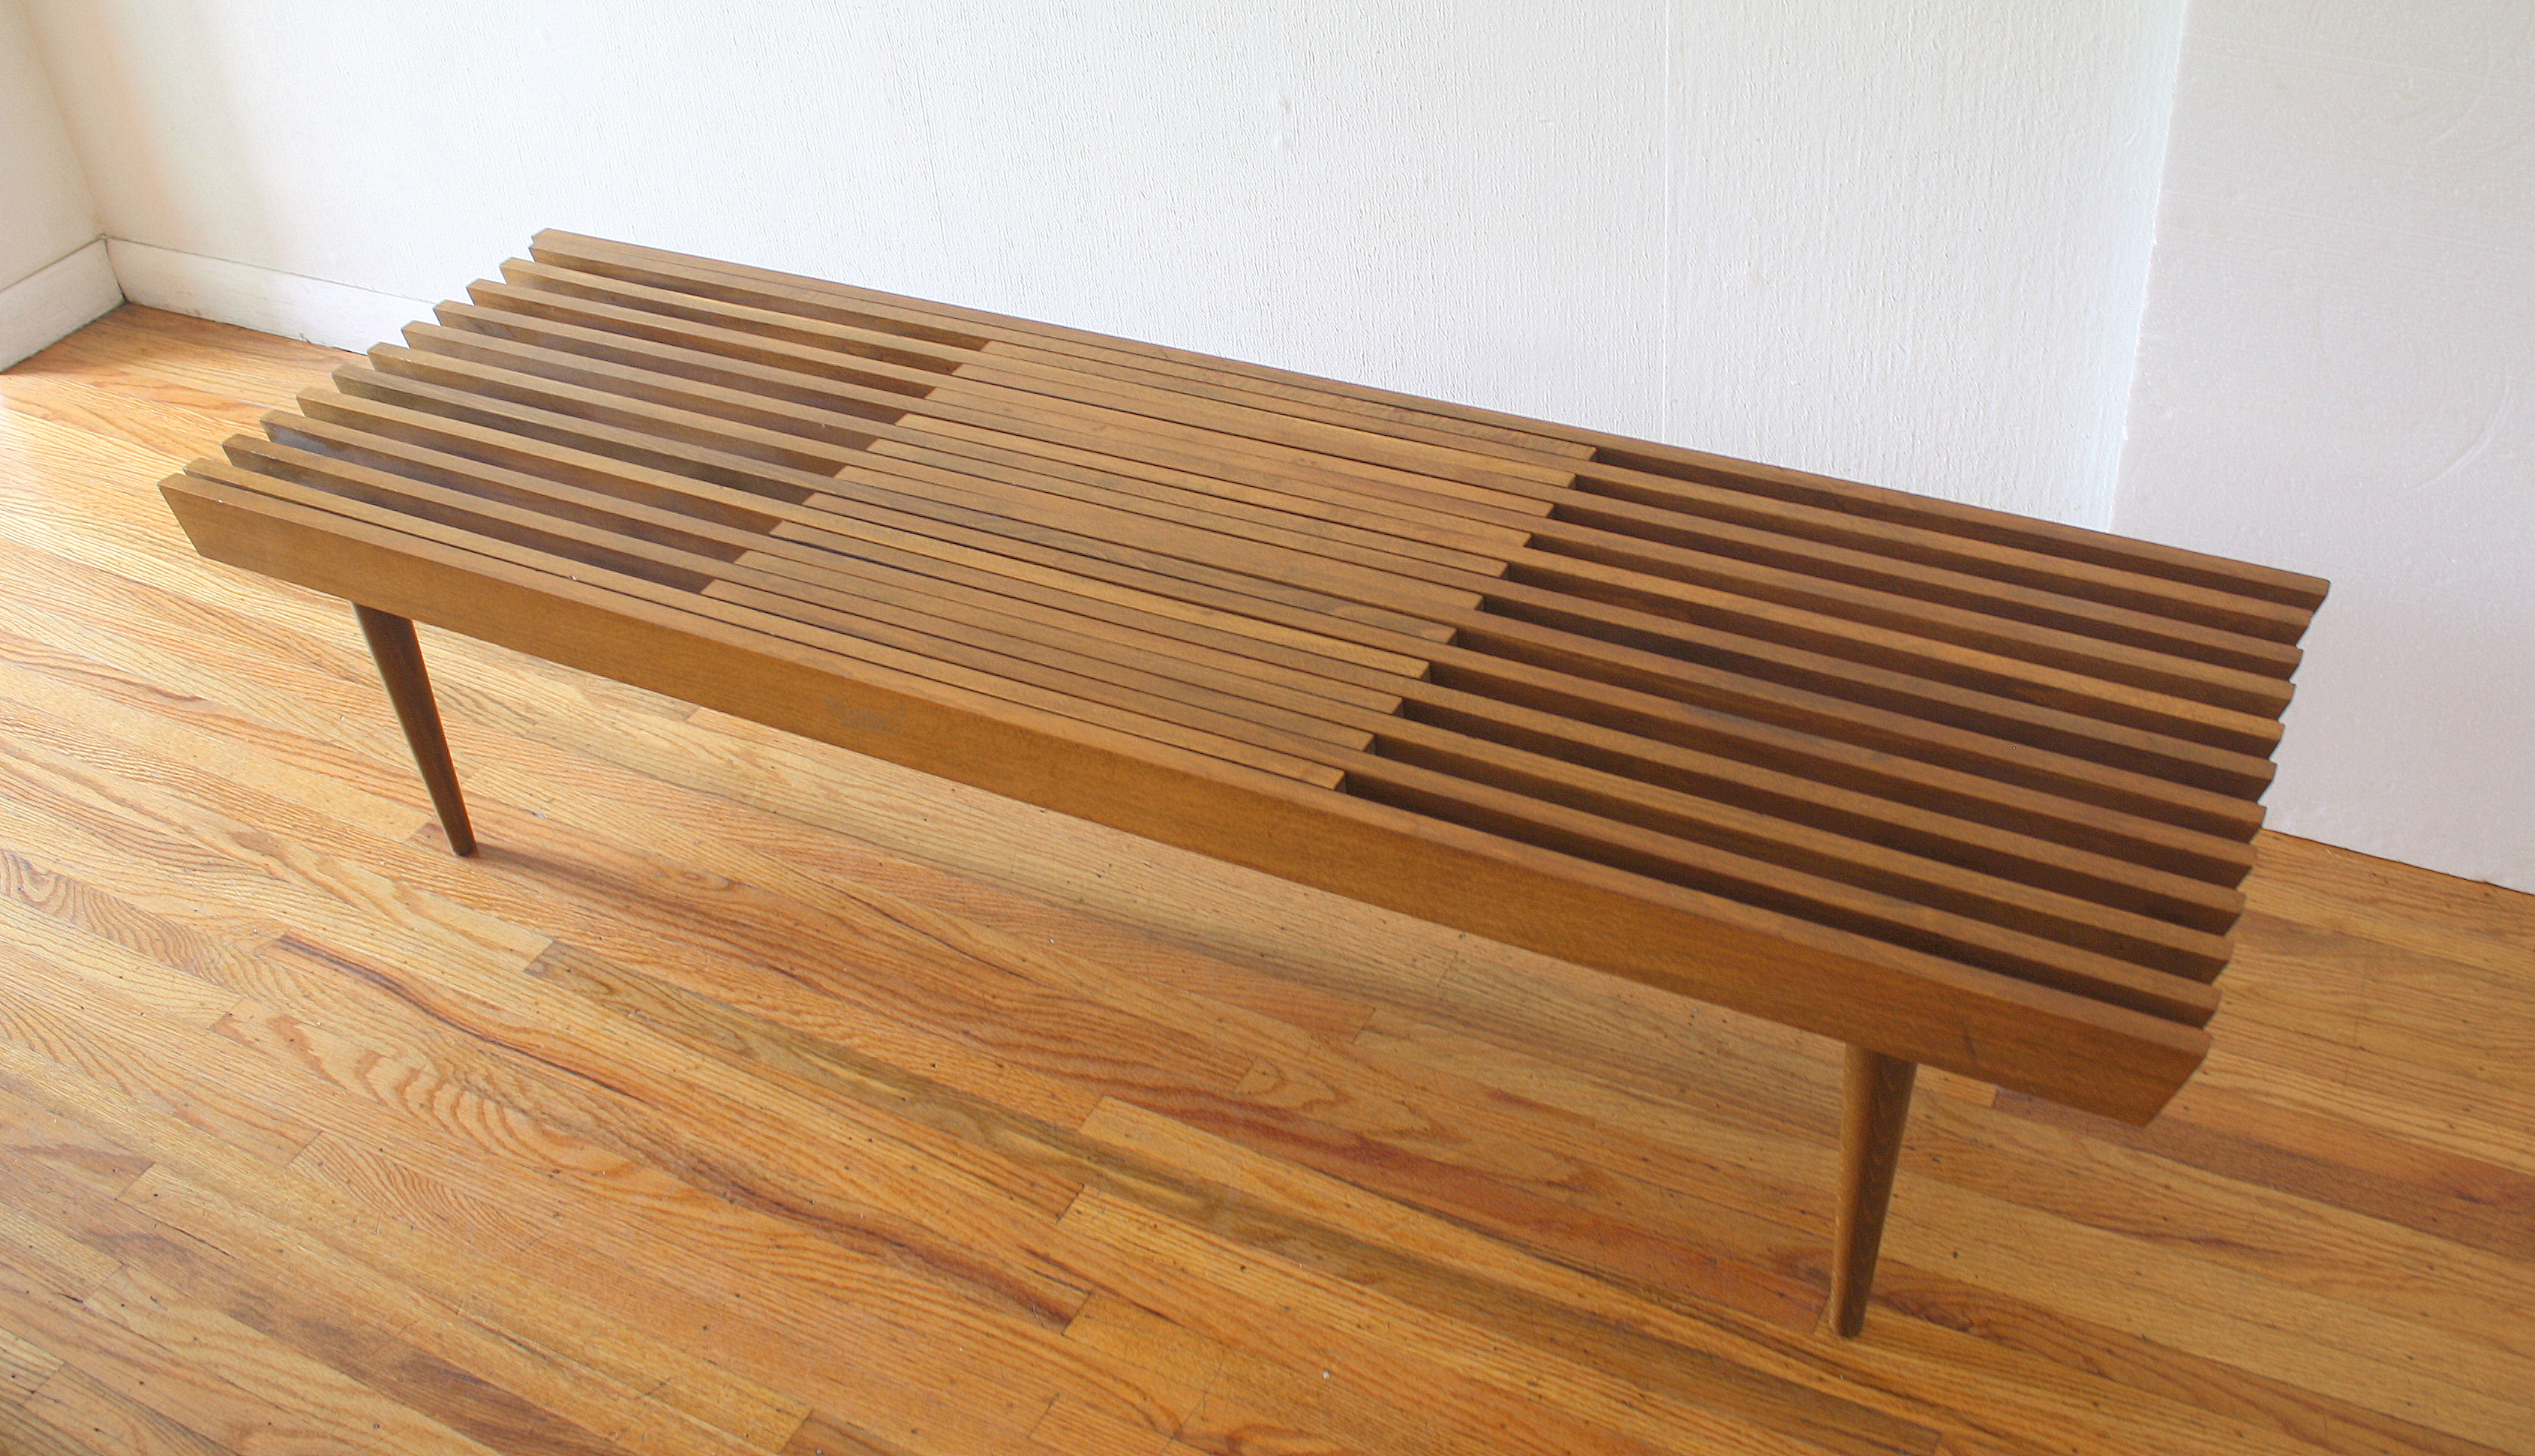 mcm slatted extendong table bench 2.JPG